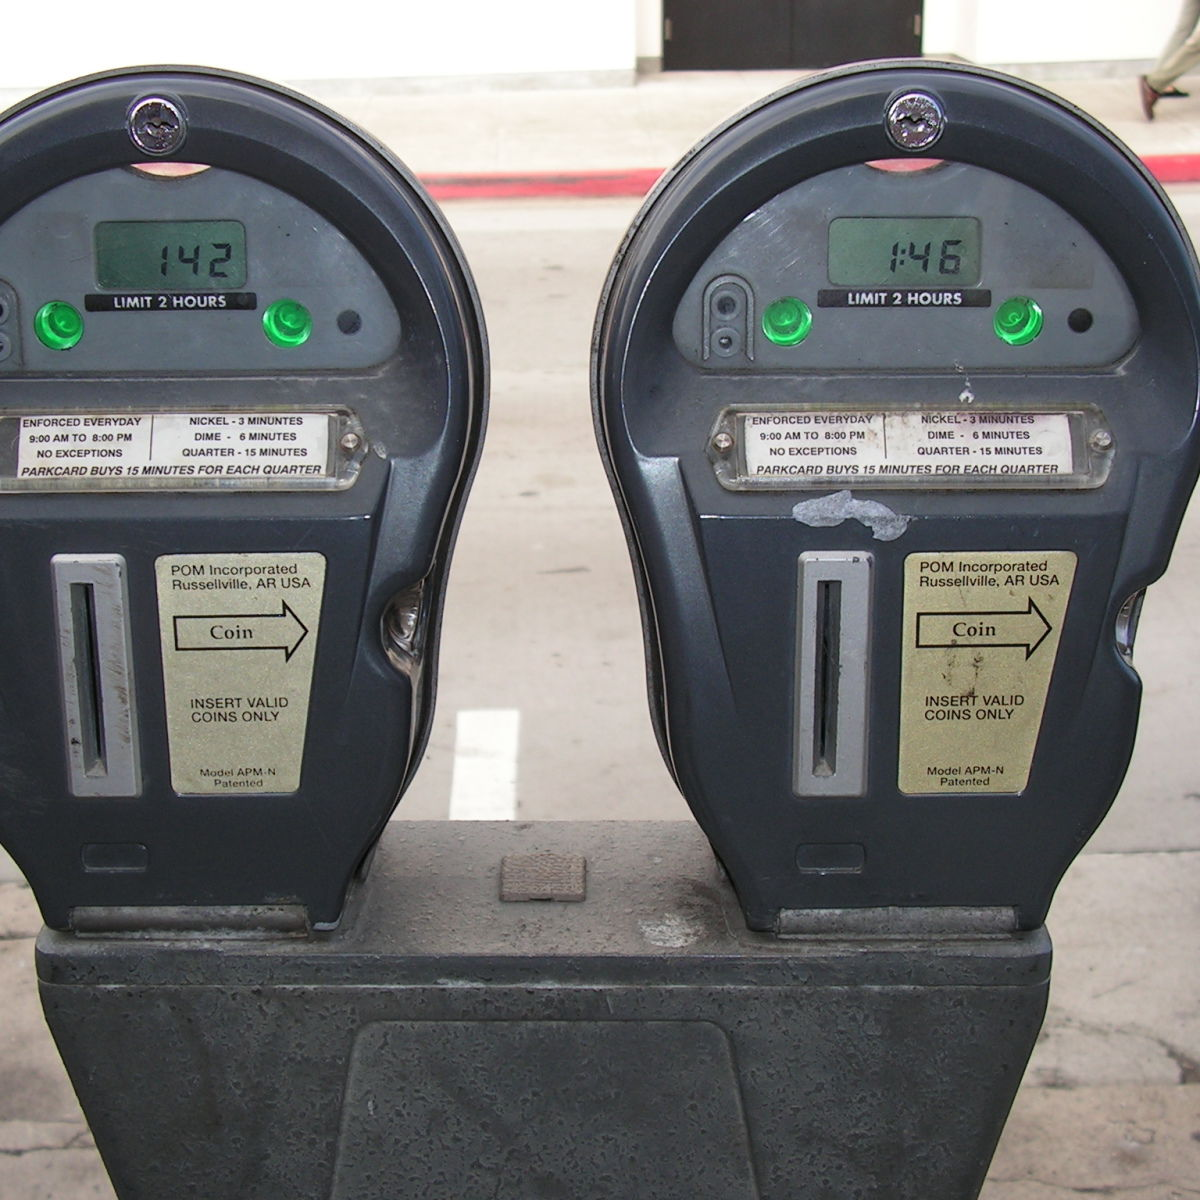 Parking meter uvemyy